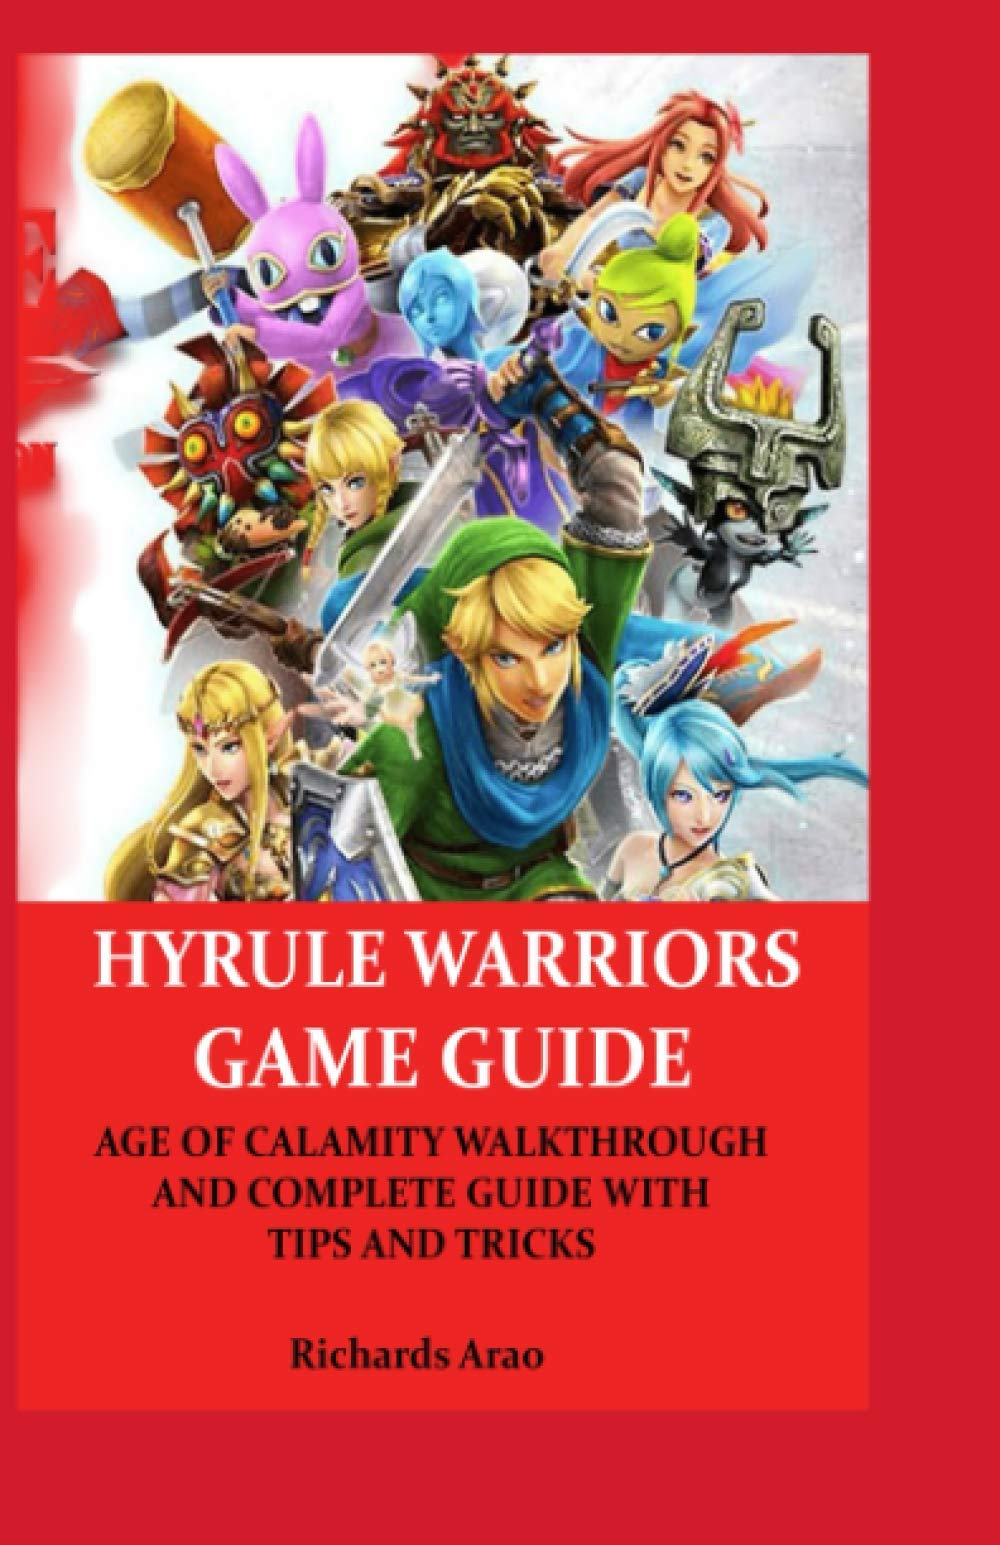 Hyrule Warriors Game Guide Age Of Calamity Walkthrough And Complete Guide With Tips And Tricks Arao Richards 9798582146582 Amazon Com Books